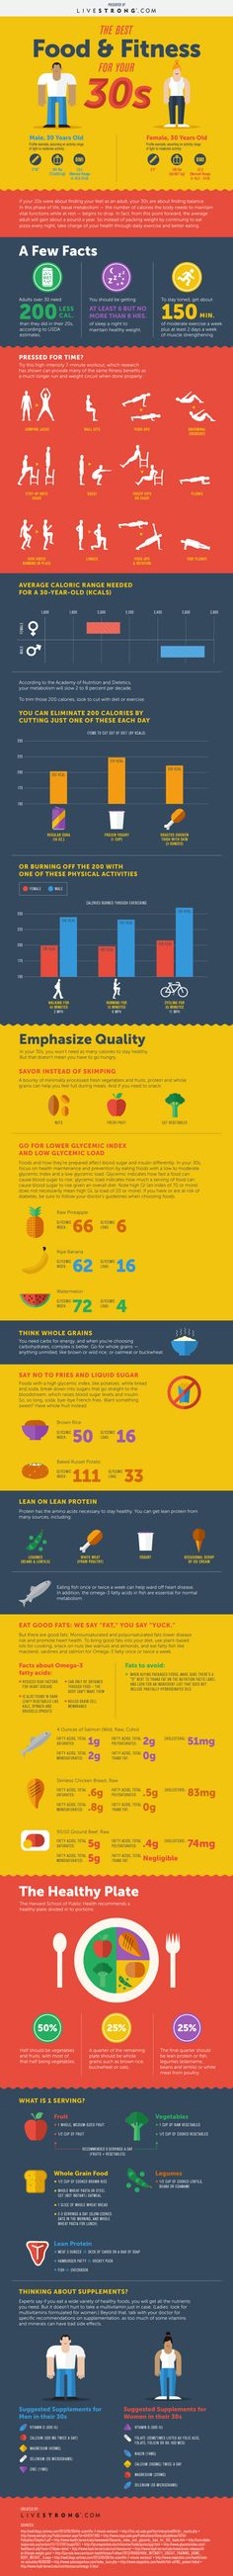 Eating and Exercise Tips for Your 30s (Infographic)